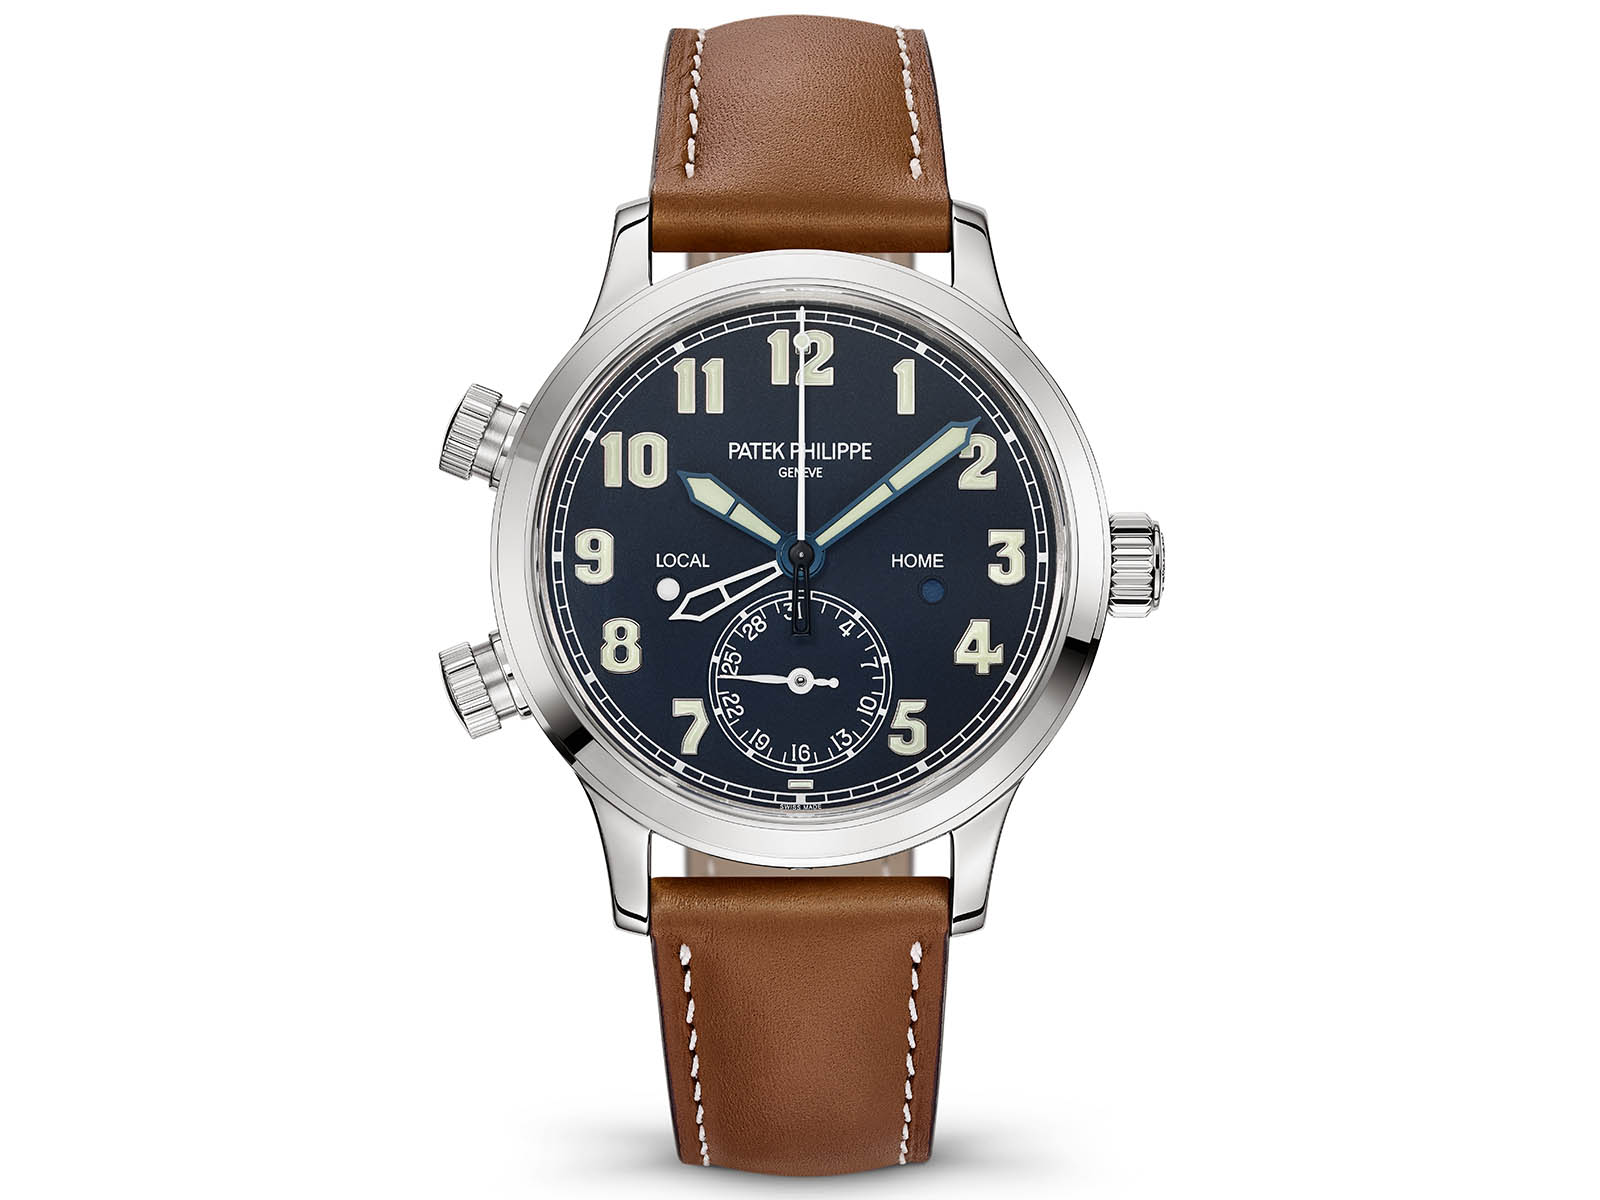 7234g-001-patek-philippe-calatrava-pilot-travel-time-9.jpg